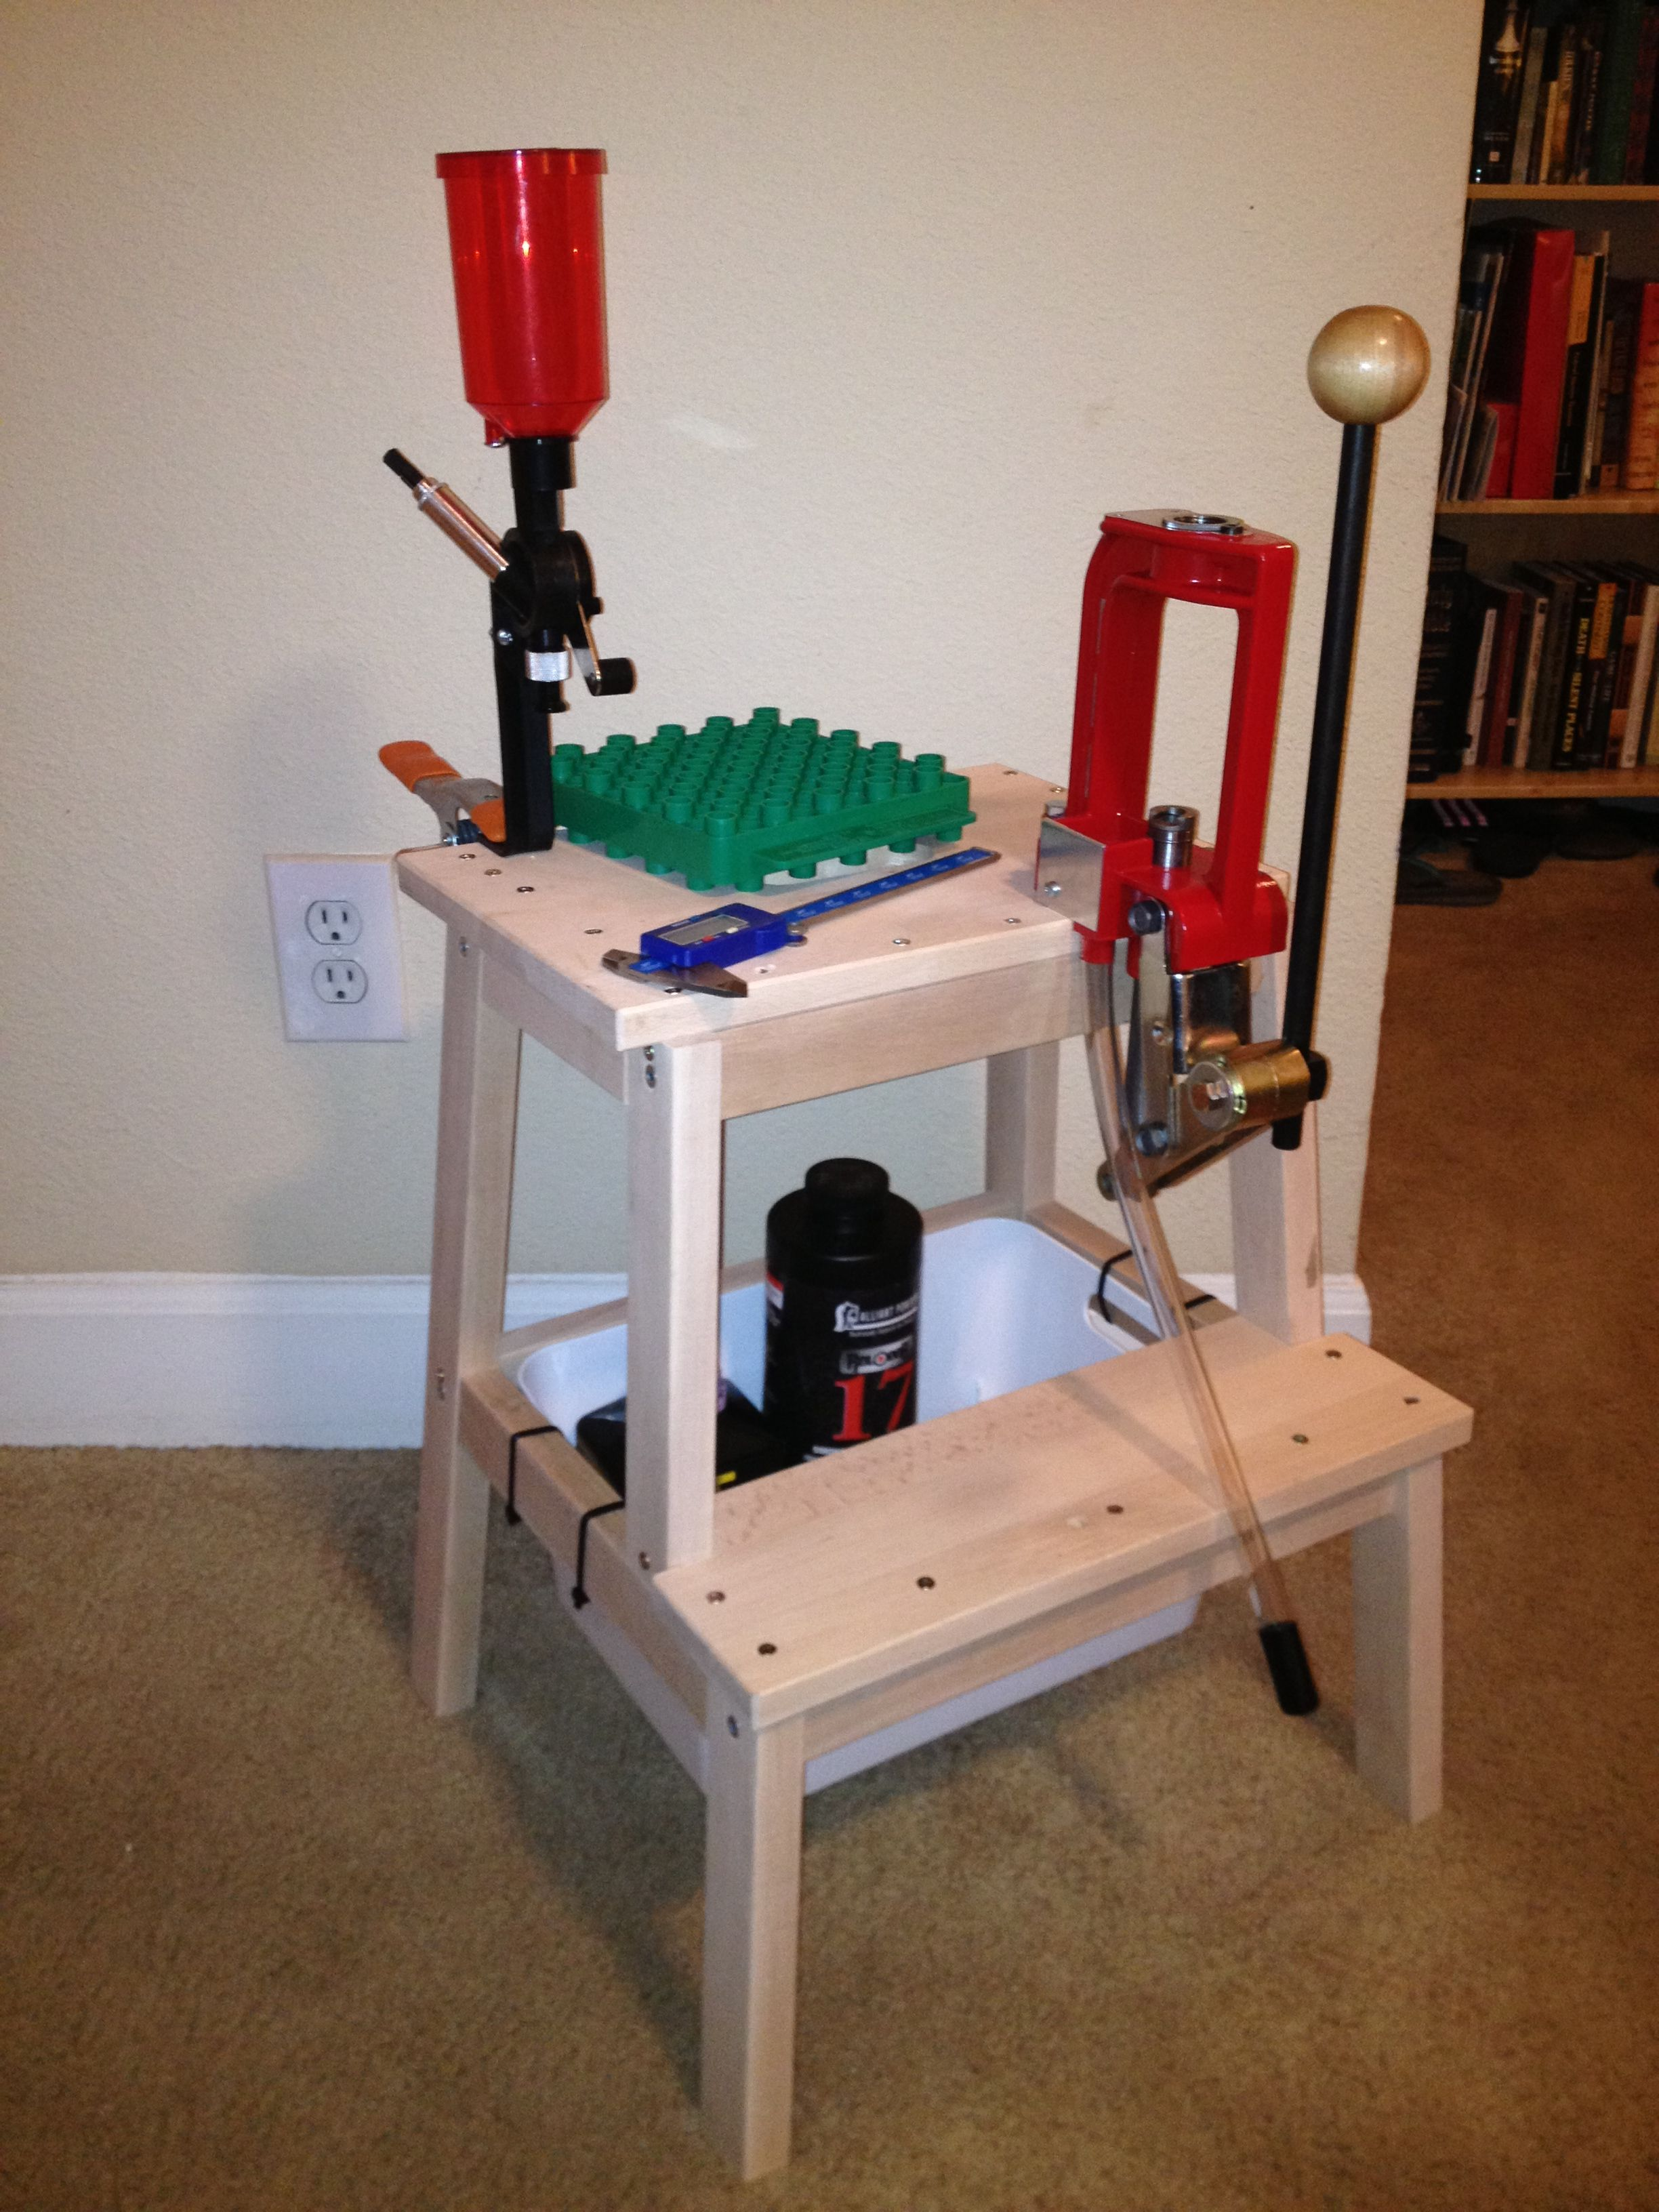 Logan S Home Made Bulletin Reloading Kit Stand 14 Dollar Stool And Bucket Screwed To It From Ikea And O Reloading Bench Reloading Bench Plans Reloading Press